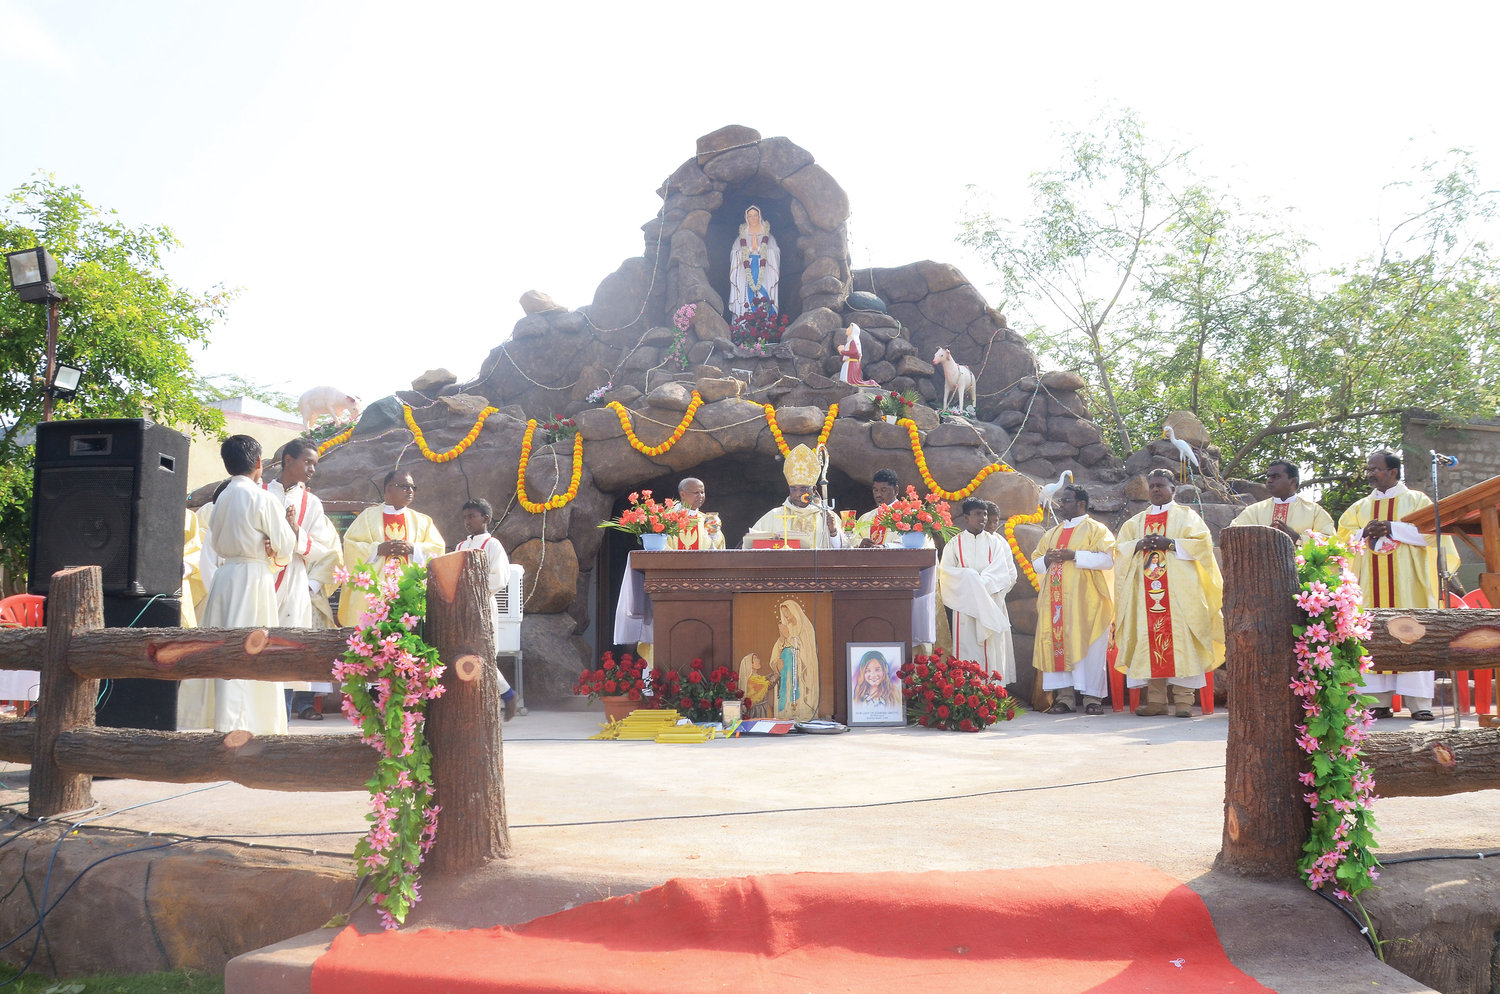 The Our Lady of Lourdes grotto at St. Theresa's parish in Kakkanour, India, was dedicated last month in Kaitlyn's memory. A portrait of Kaitlyn leans against the altar.